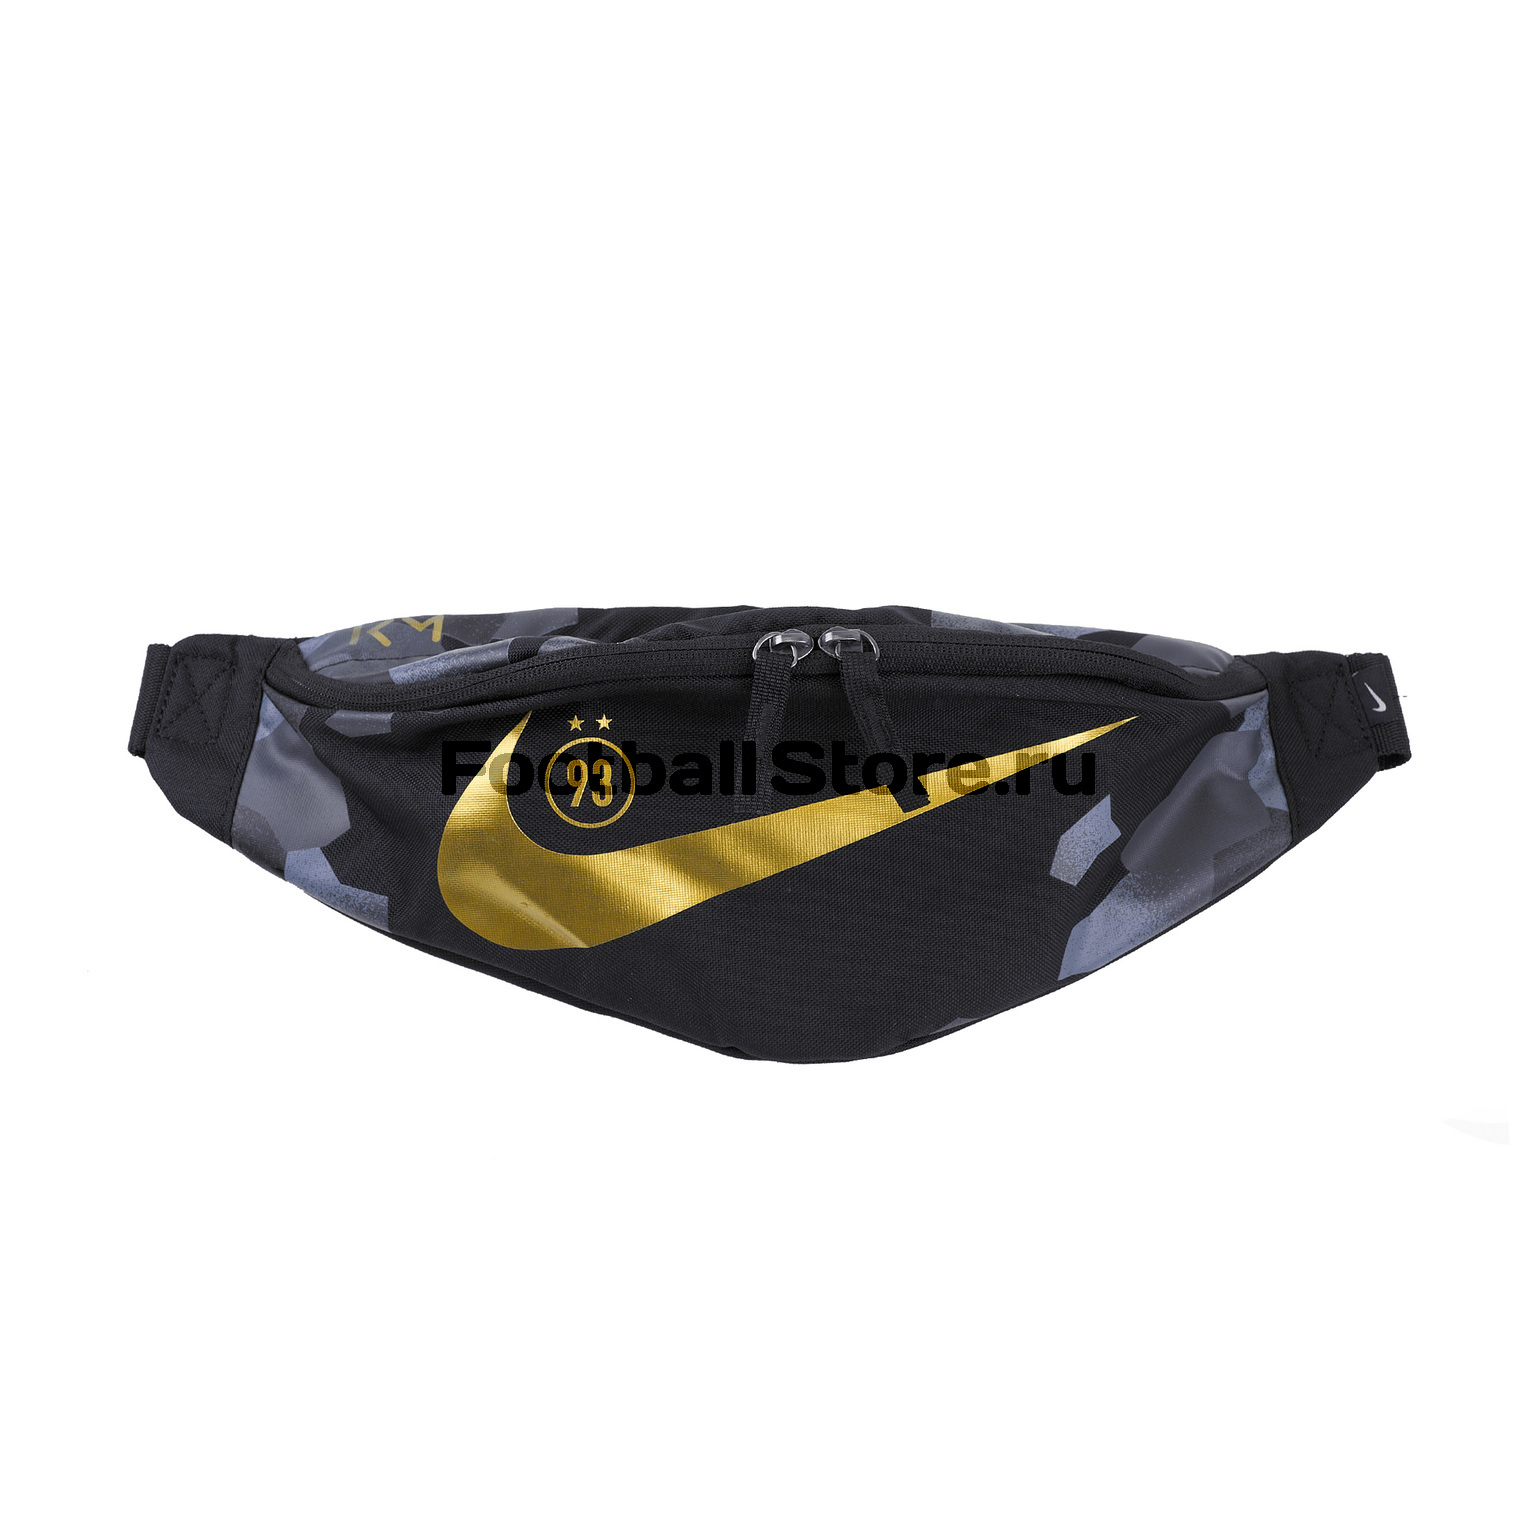 Сумка на пояс Nike F.C. Hip Pack Bondy CT7234-010